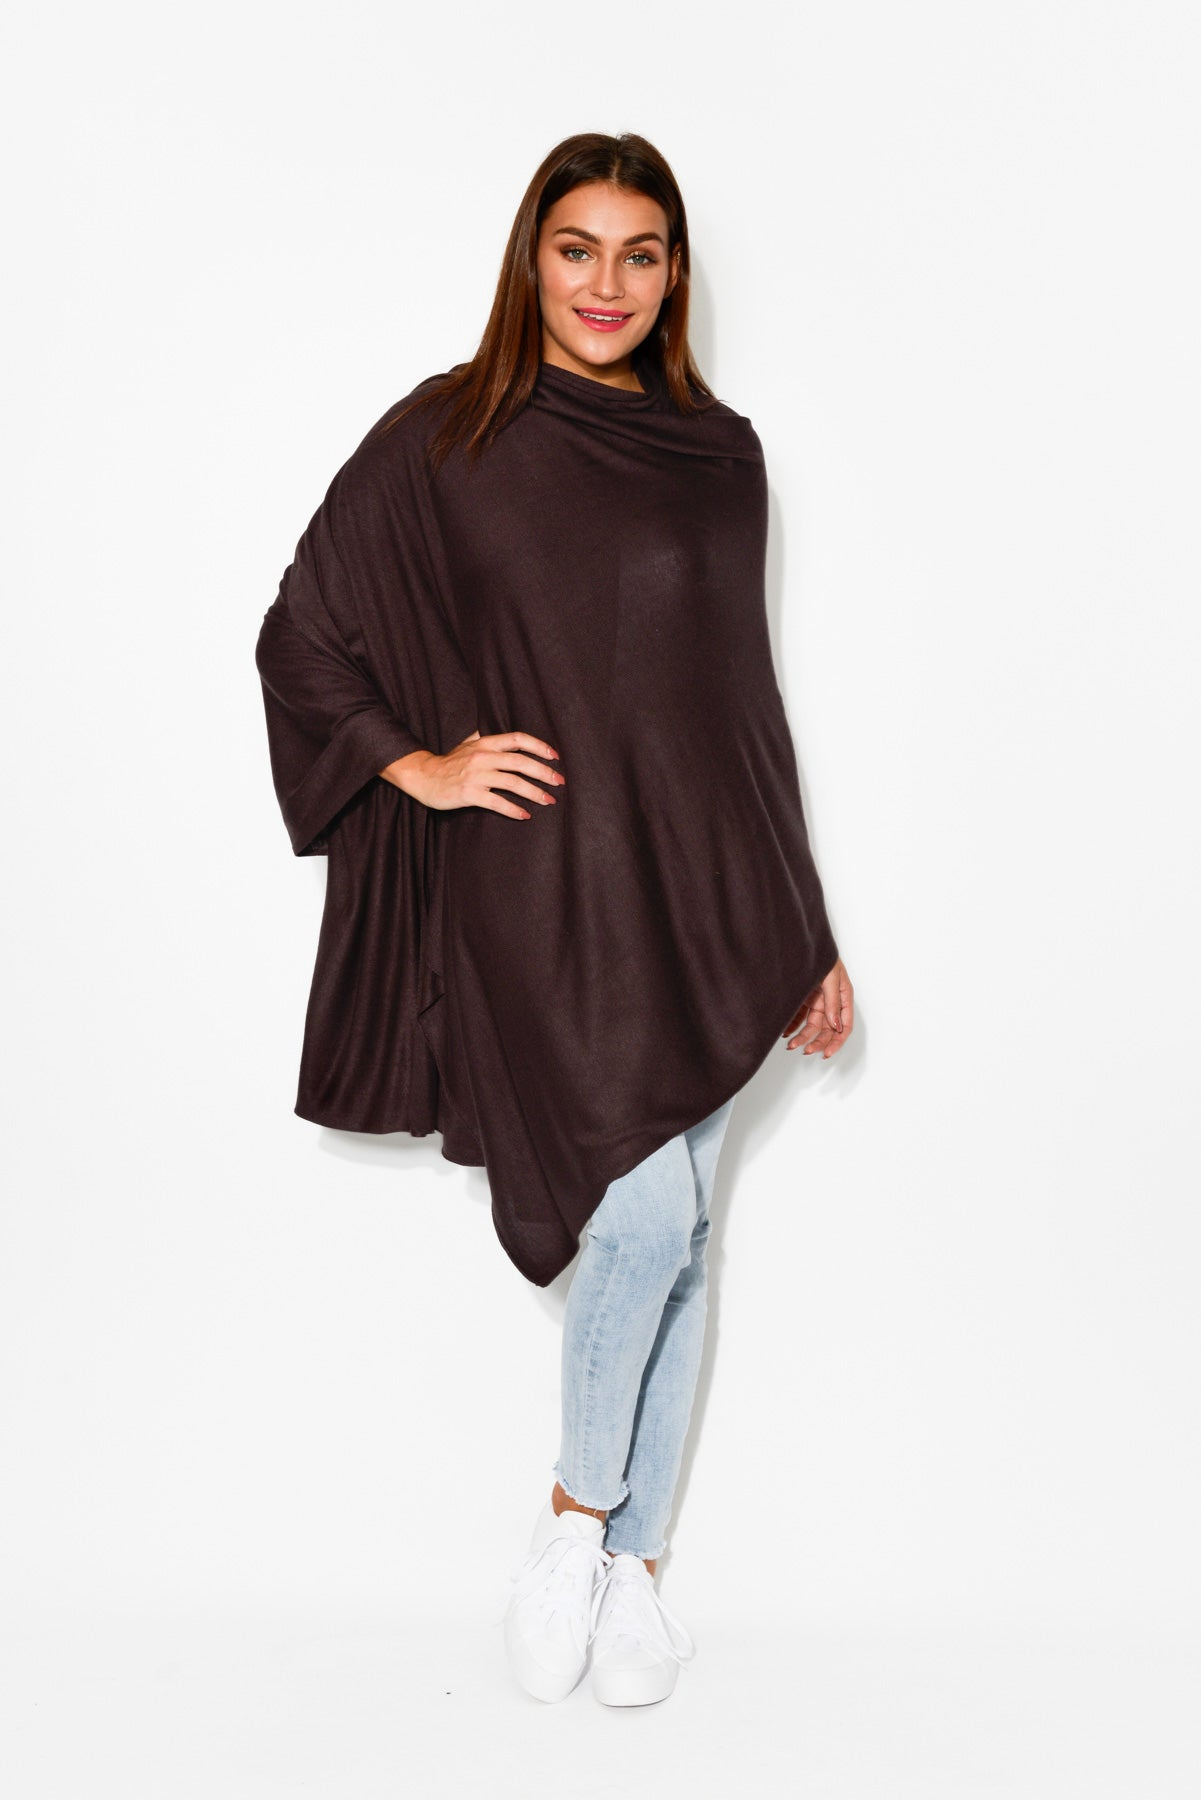 Mya Chocolate Bamboo Cashmere Knit Wrap - Blue Bungalow